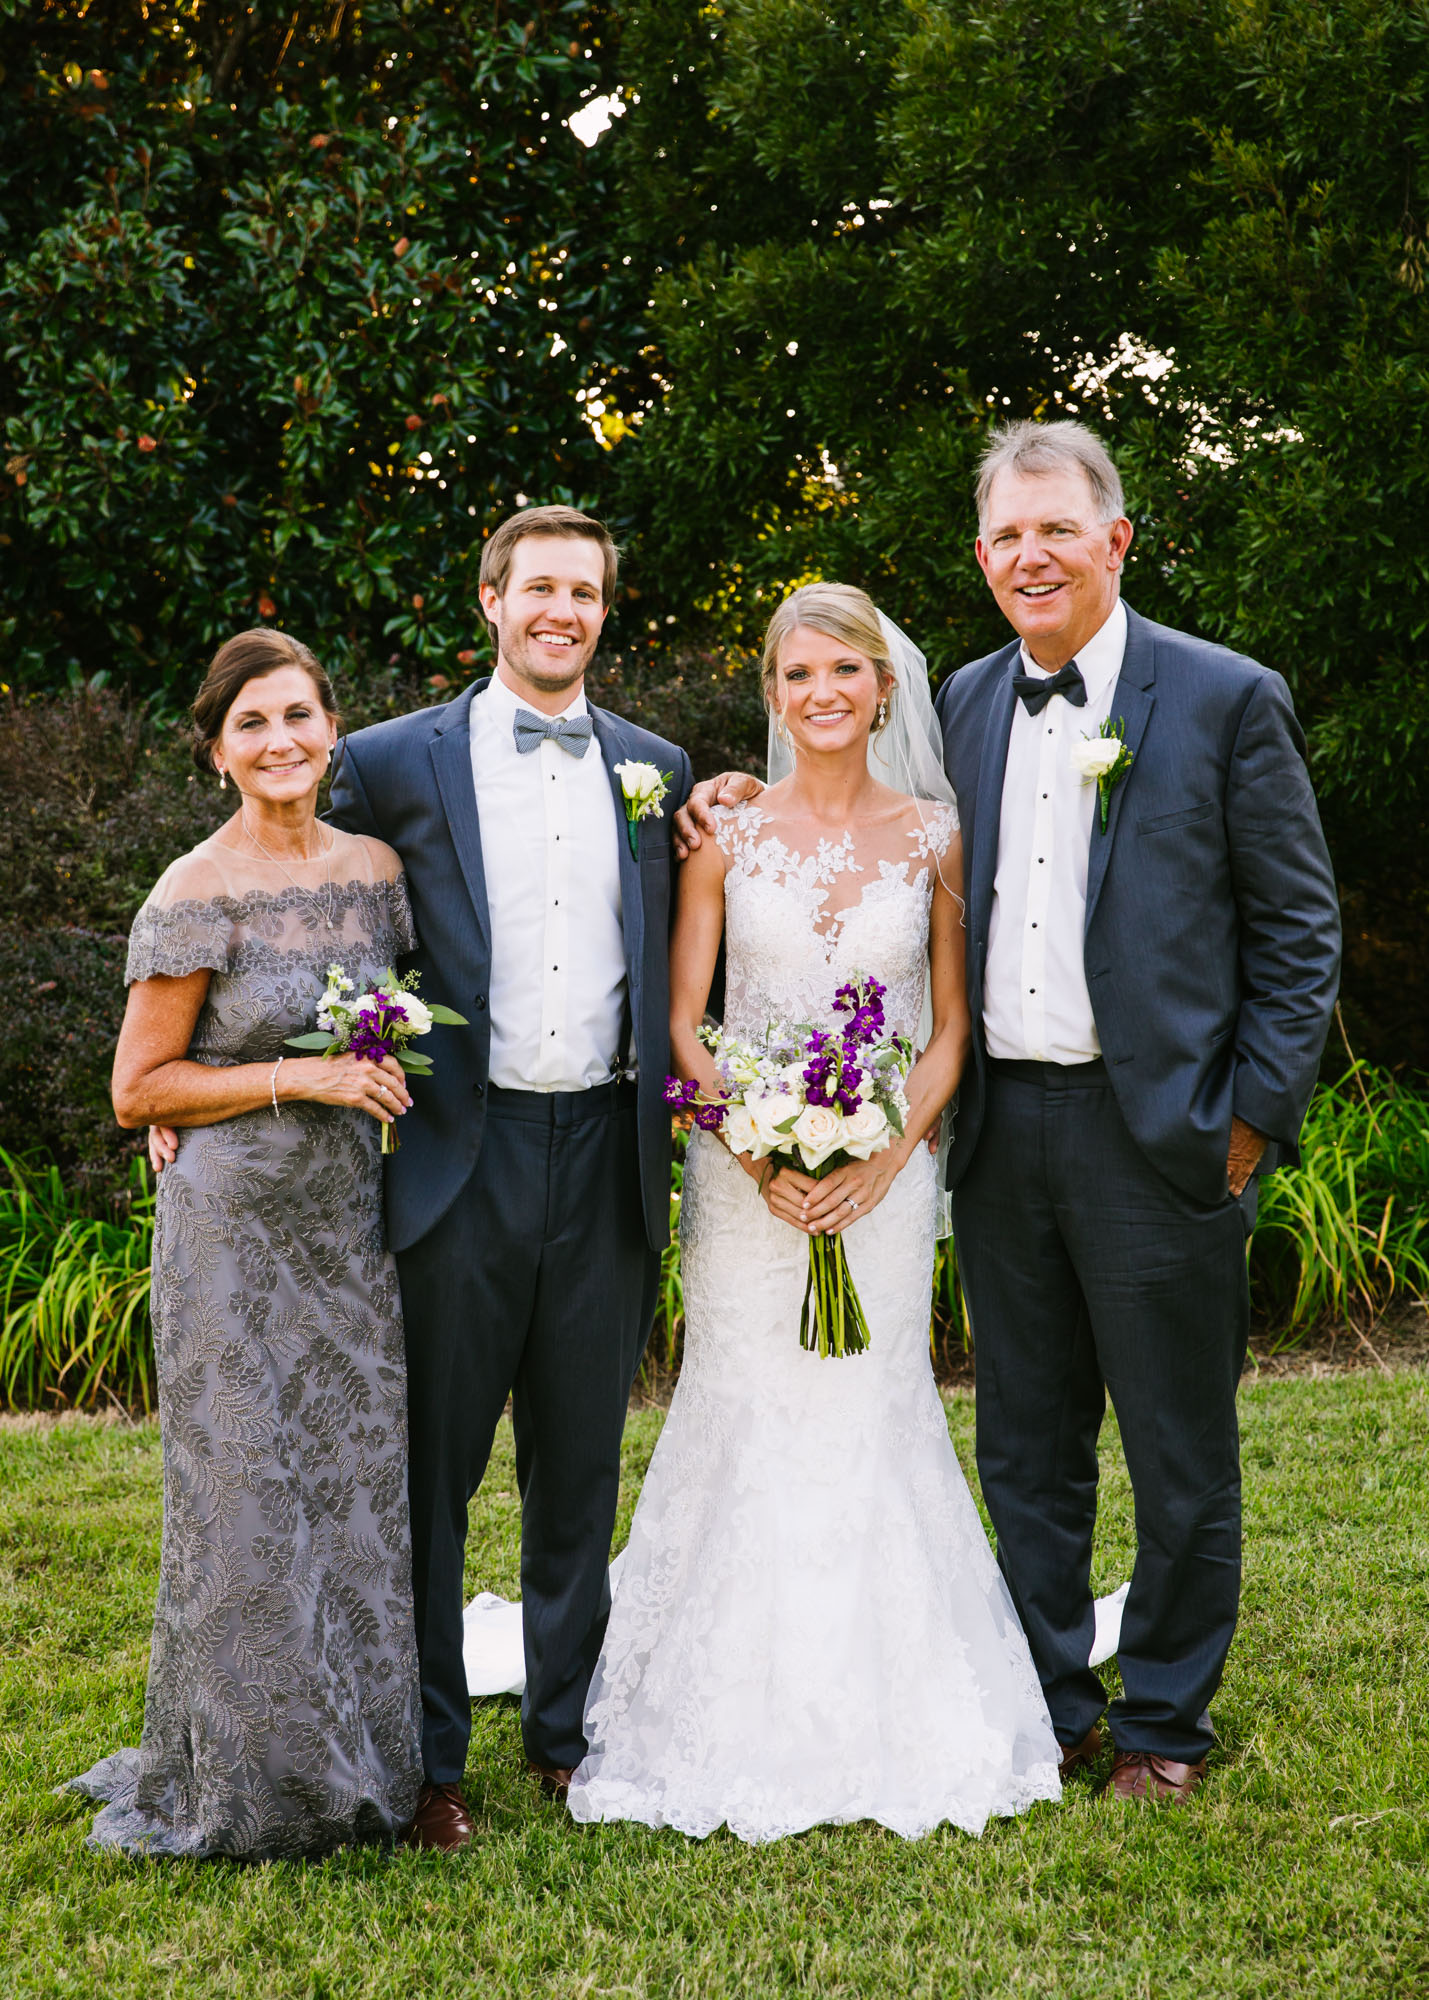 Waynesville, NC Wedding Photography | Wedding Family Portrait full Body